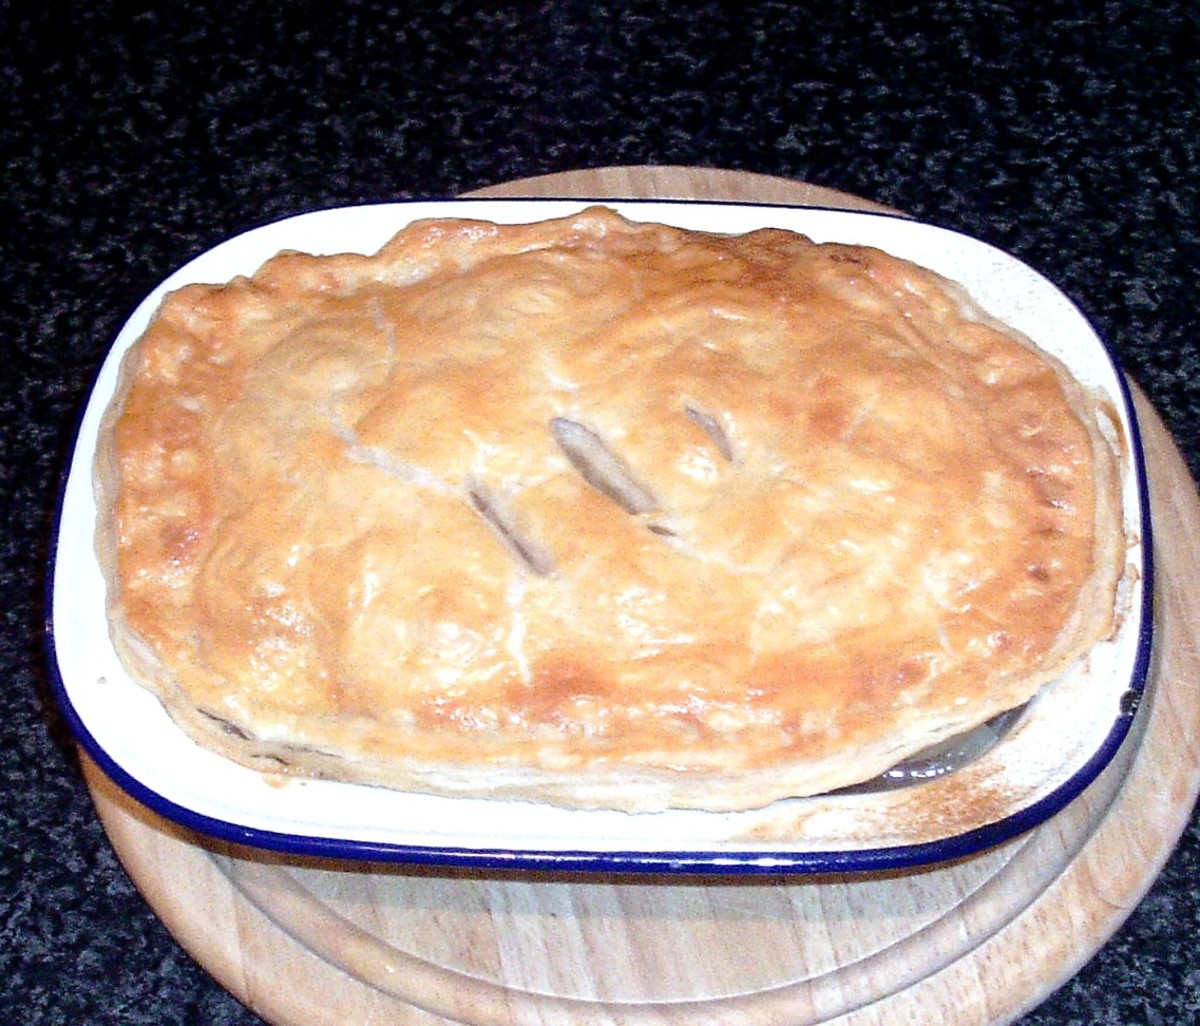 Cooked pie is taken from the oven and set aside to rest